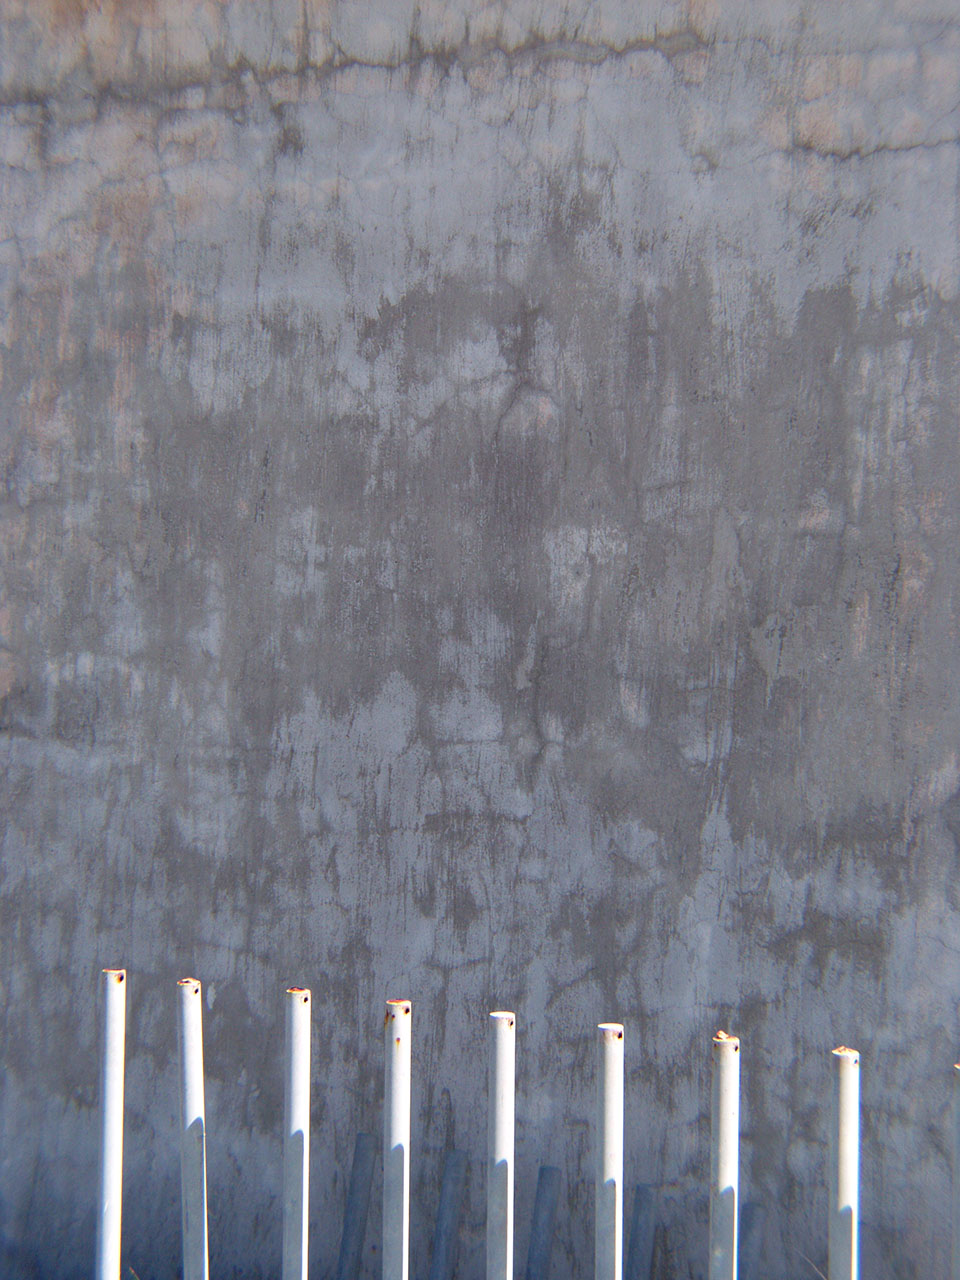 Wall and Poles